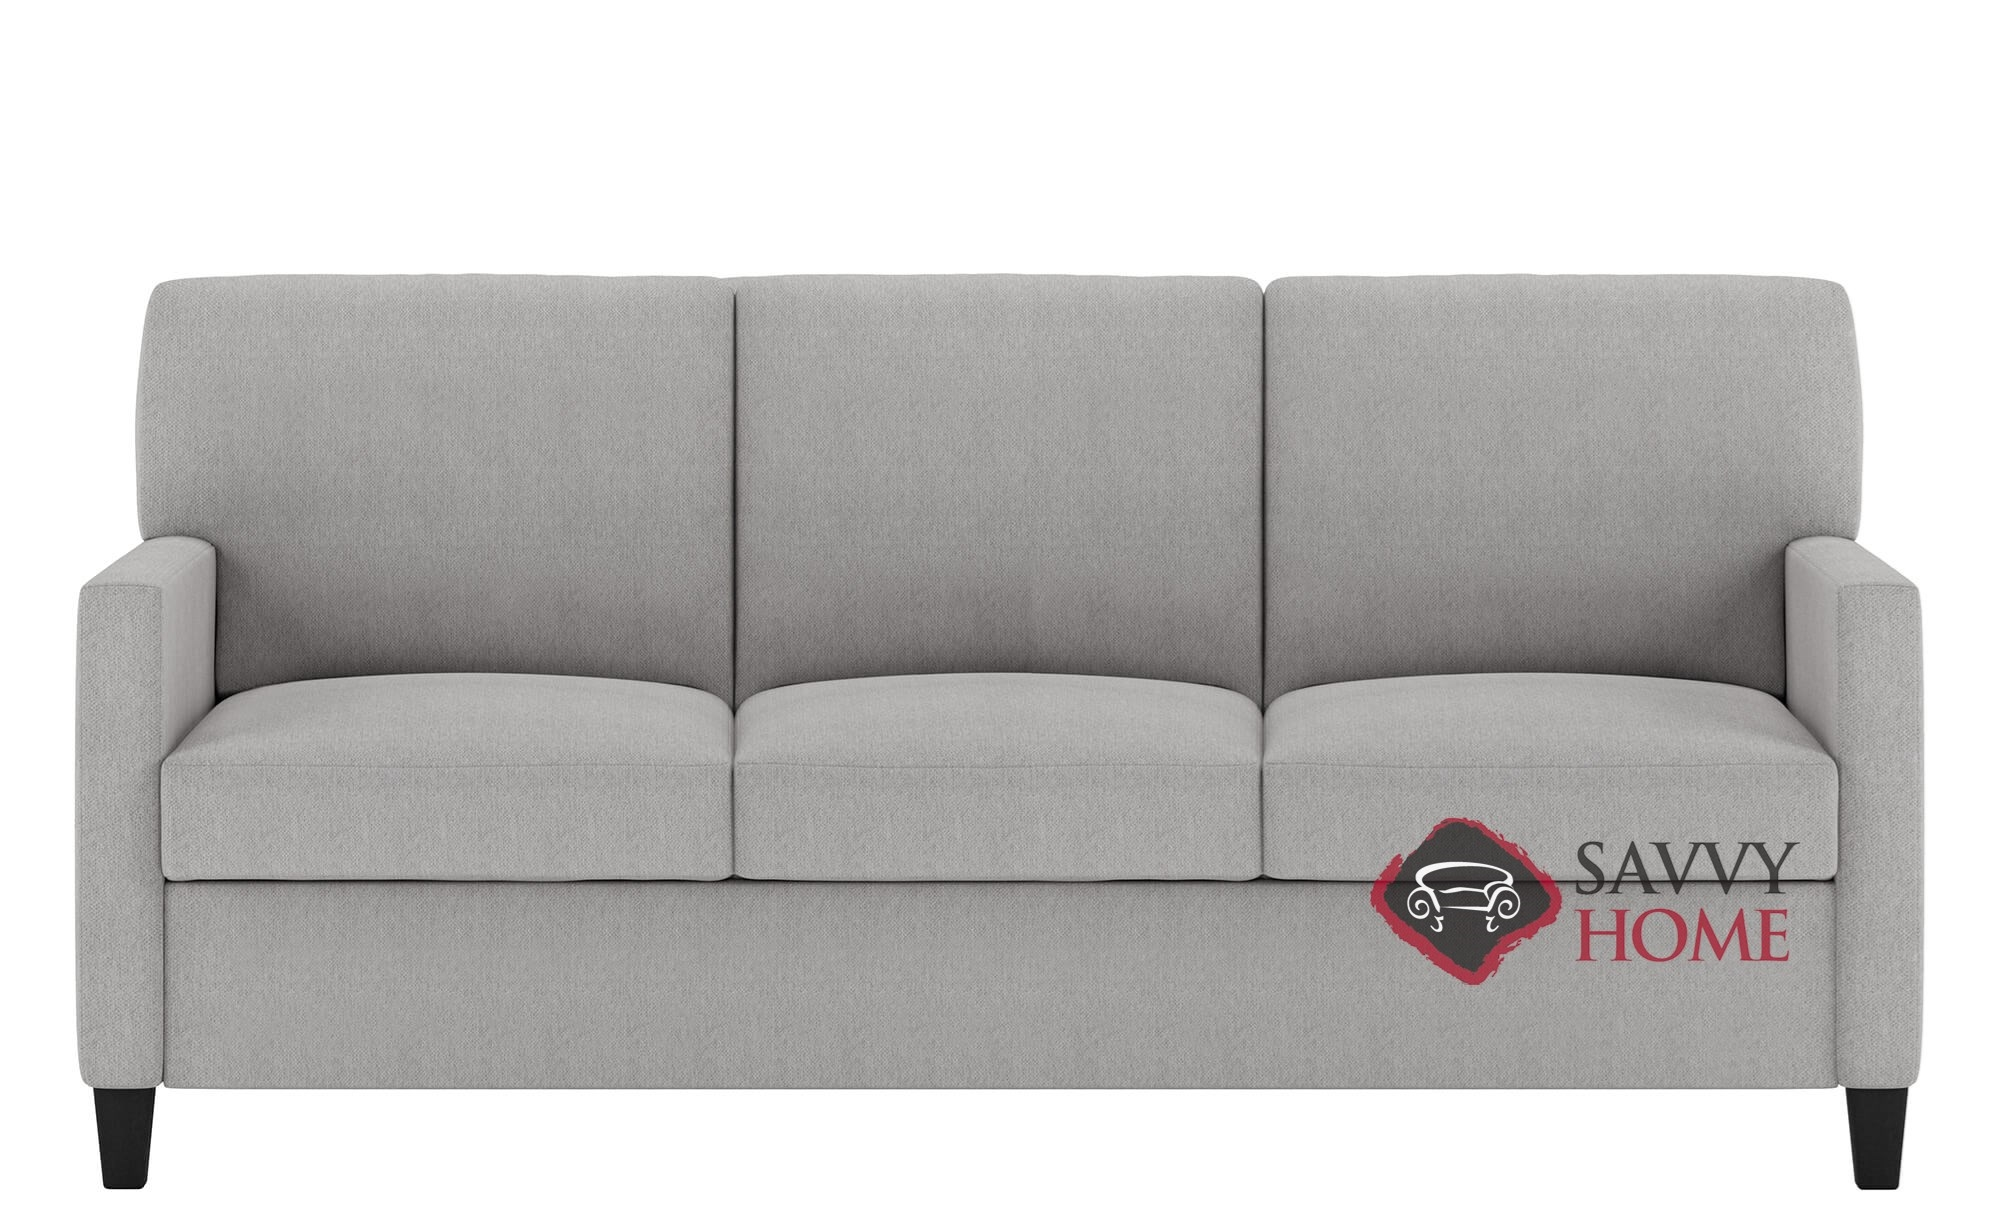 - Conley Fabric Sleeper Sofas Queen By American Leather Is Fully